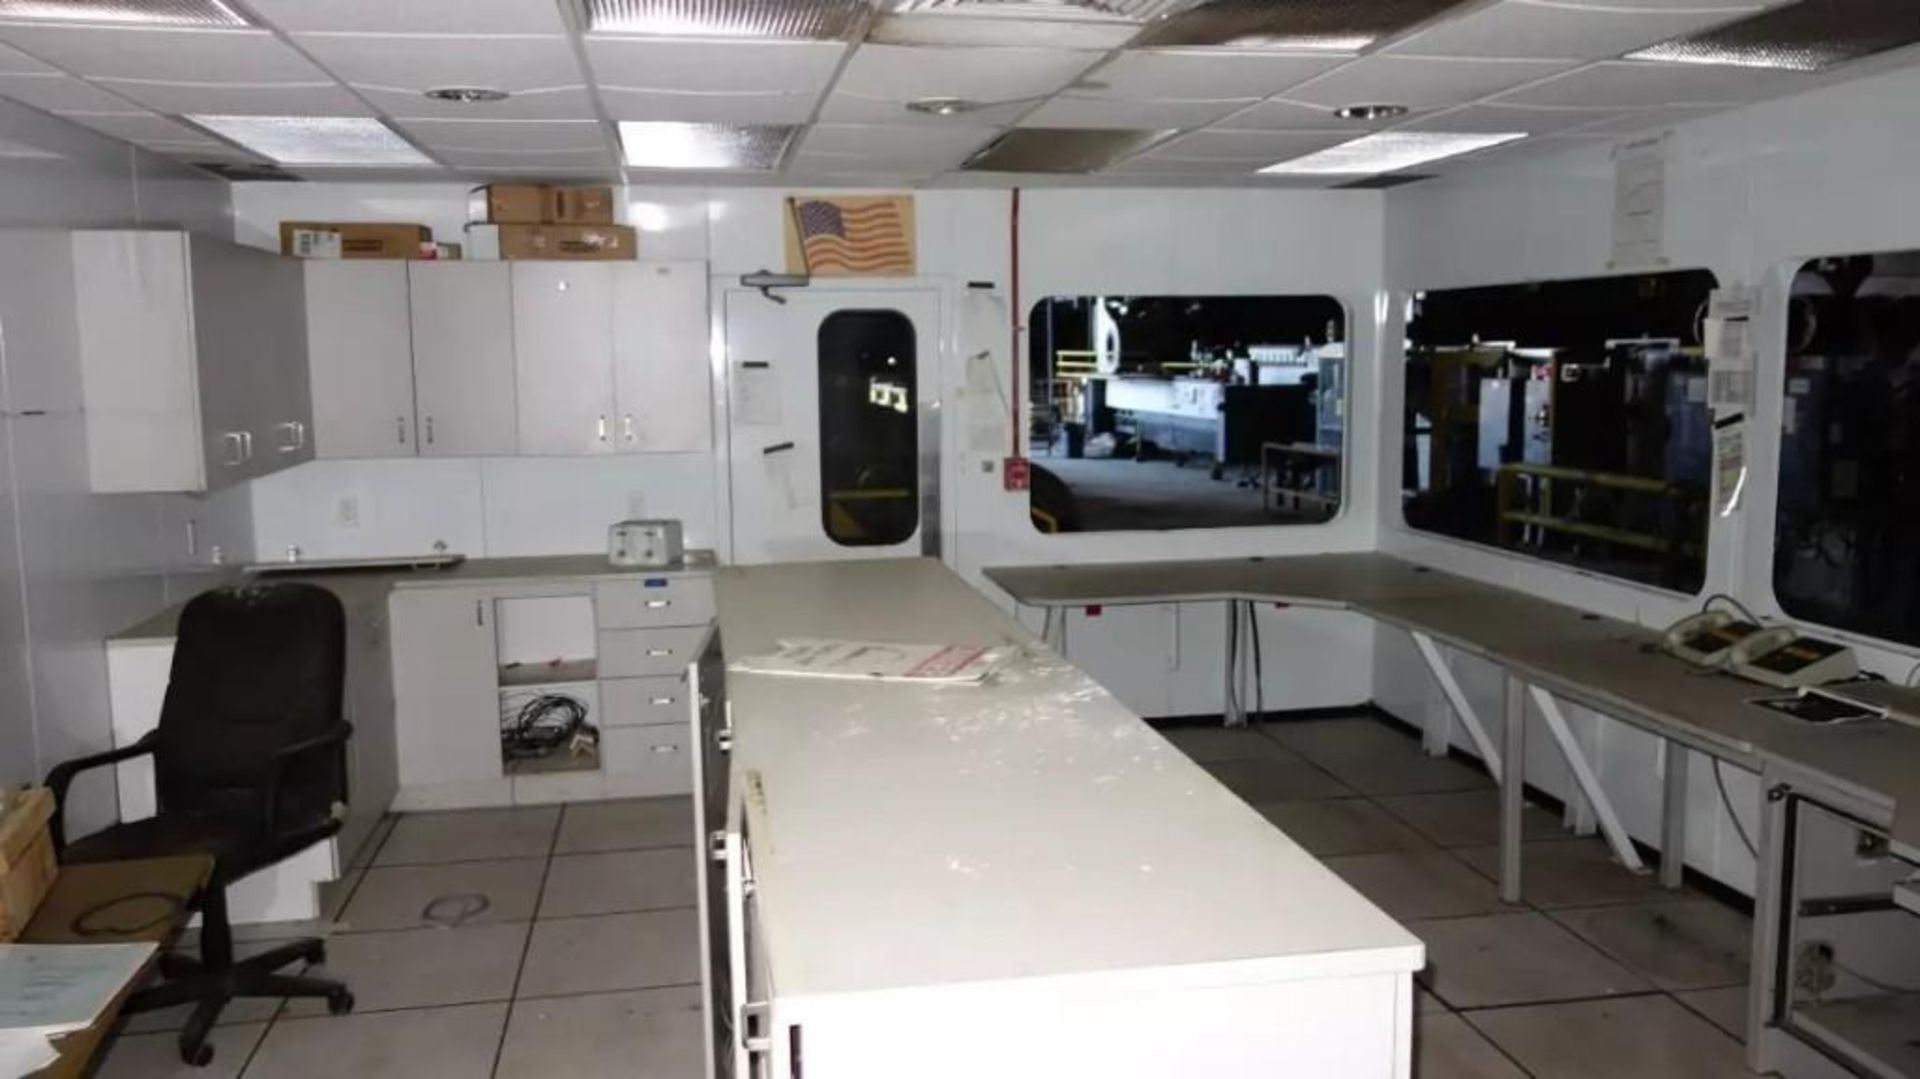 PREFABRICATED MODULAR OFFICE MECART COMMAND CENTER OFFICE WITH CONTENTS, 25X18FT (MISSING WINDOWS) - Image 3 of 11